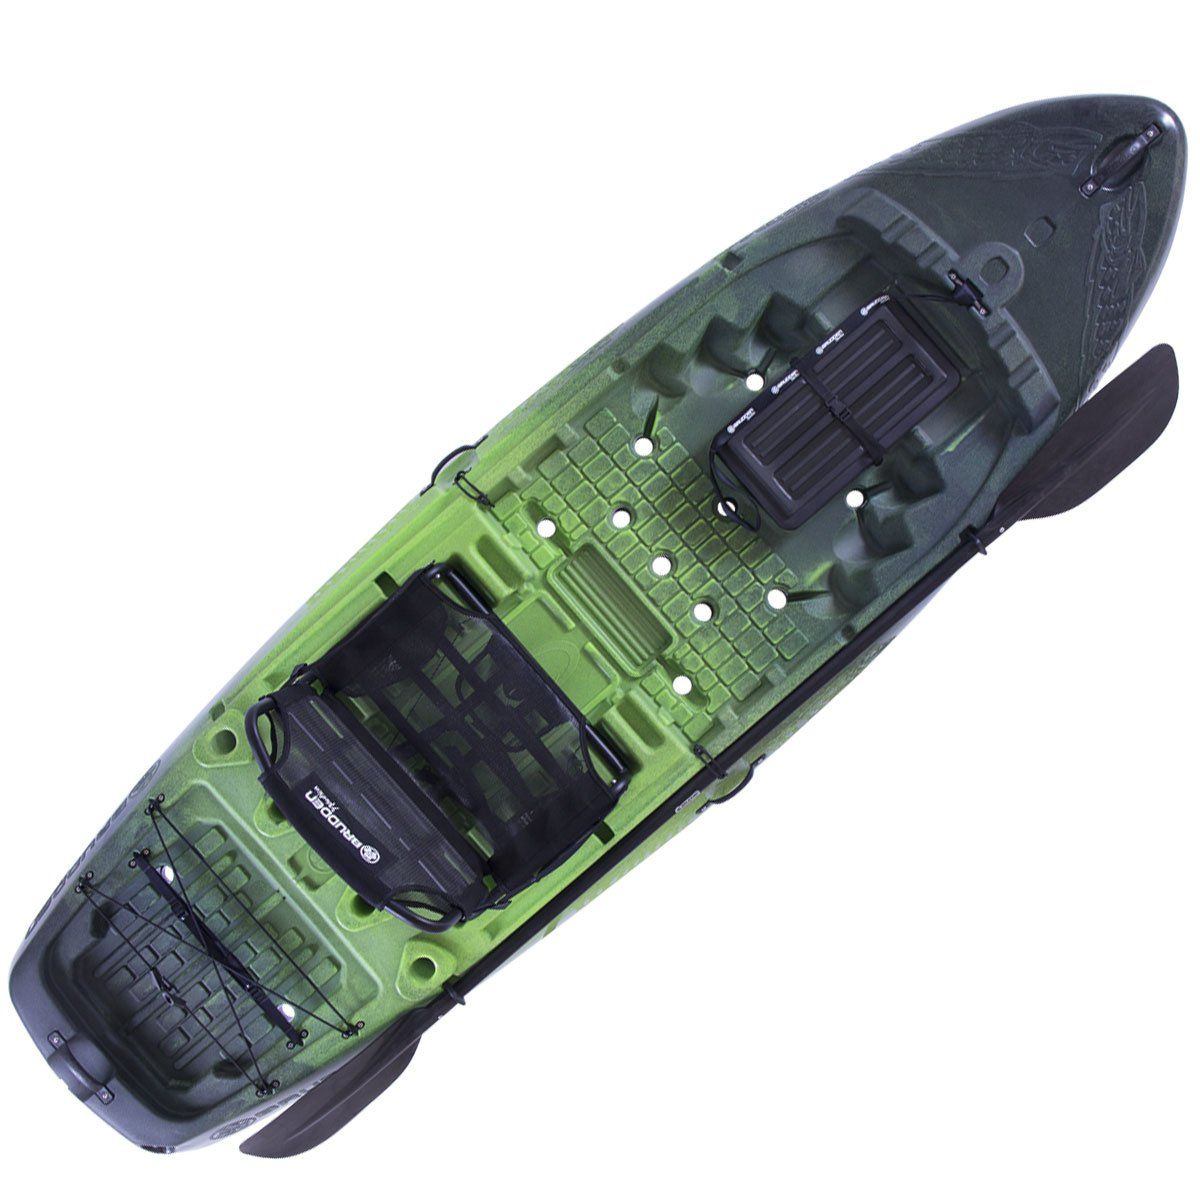 Caiaque Brudden Hunter Fishing 285 Verde/preto + Cooler Verde 15LT